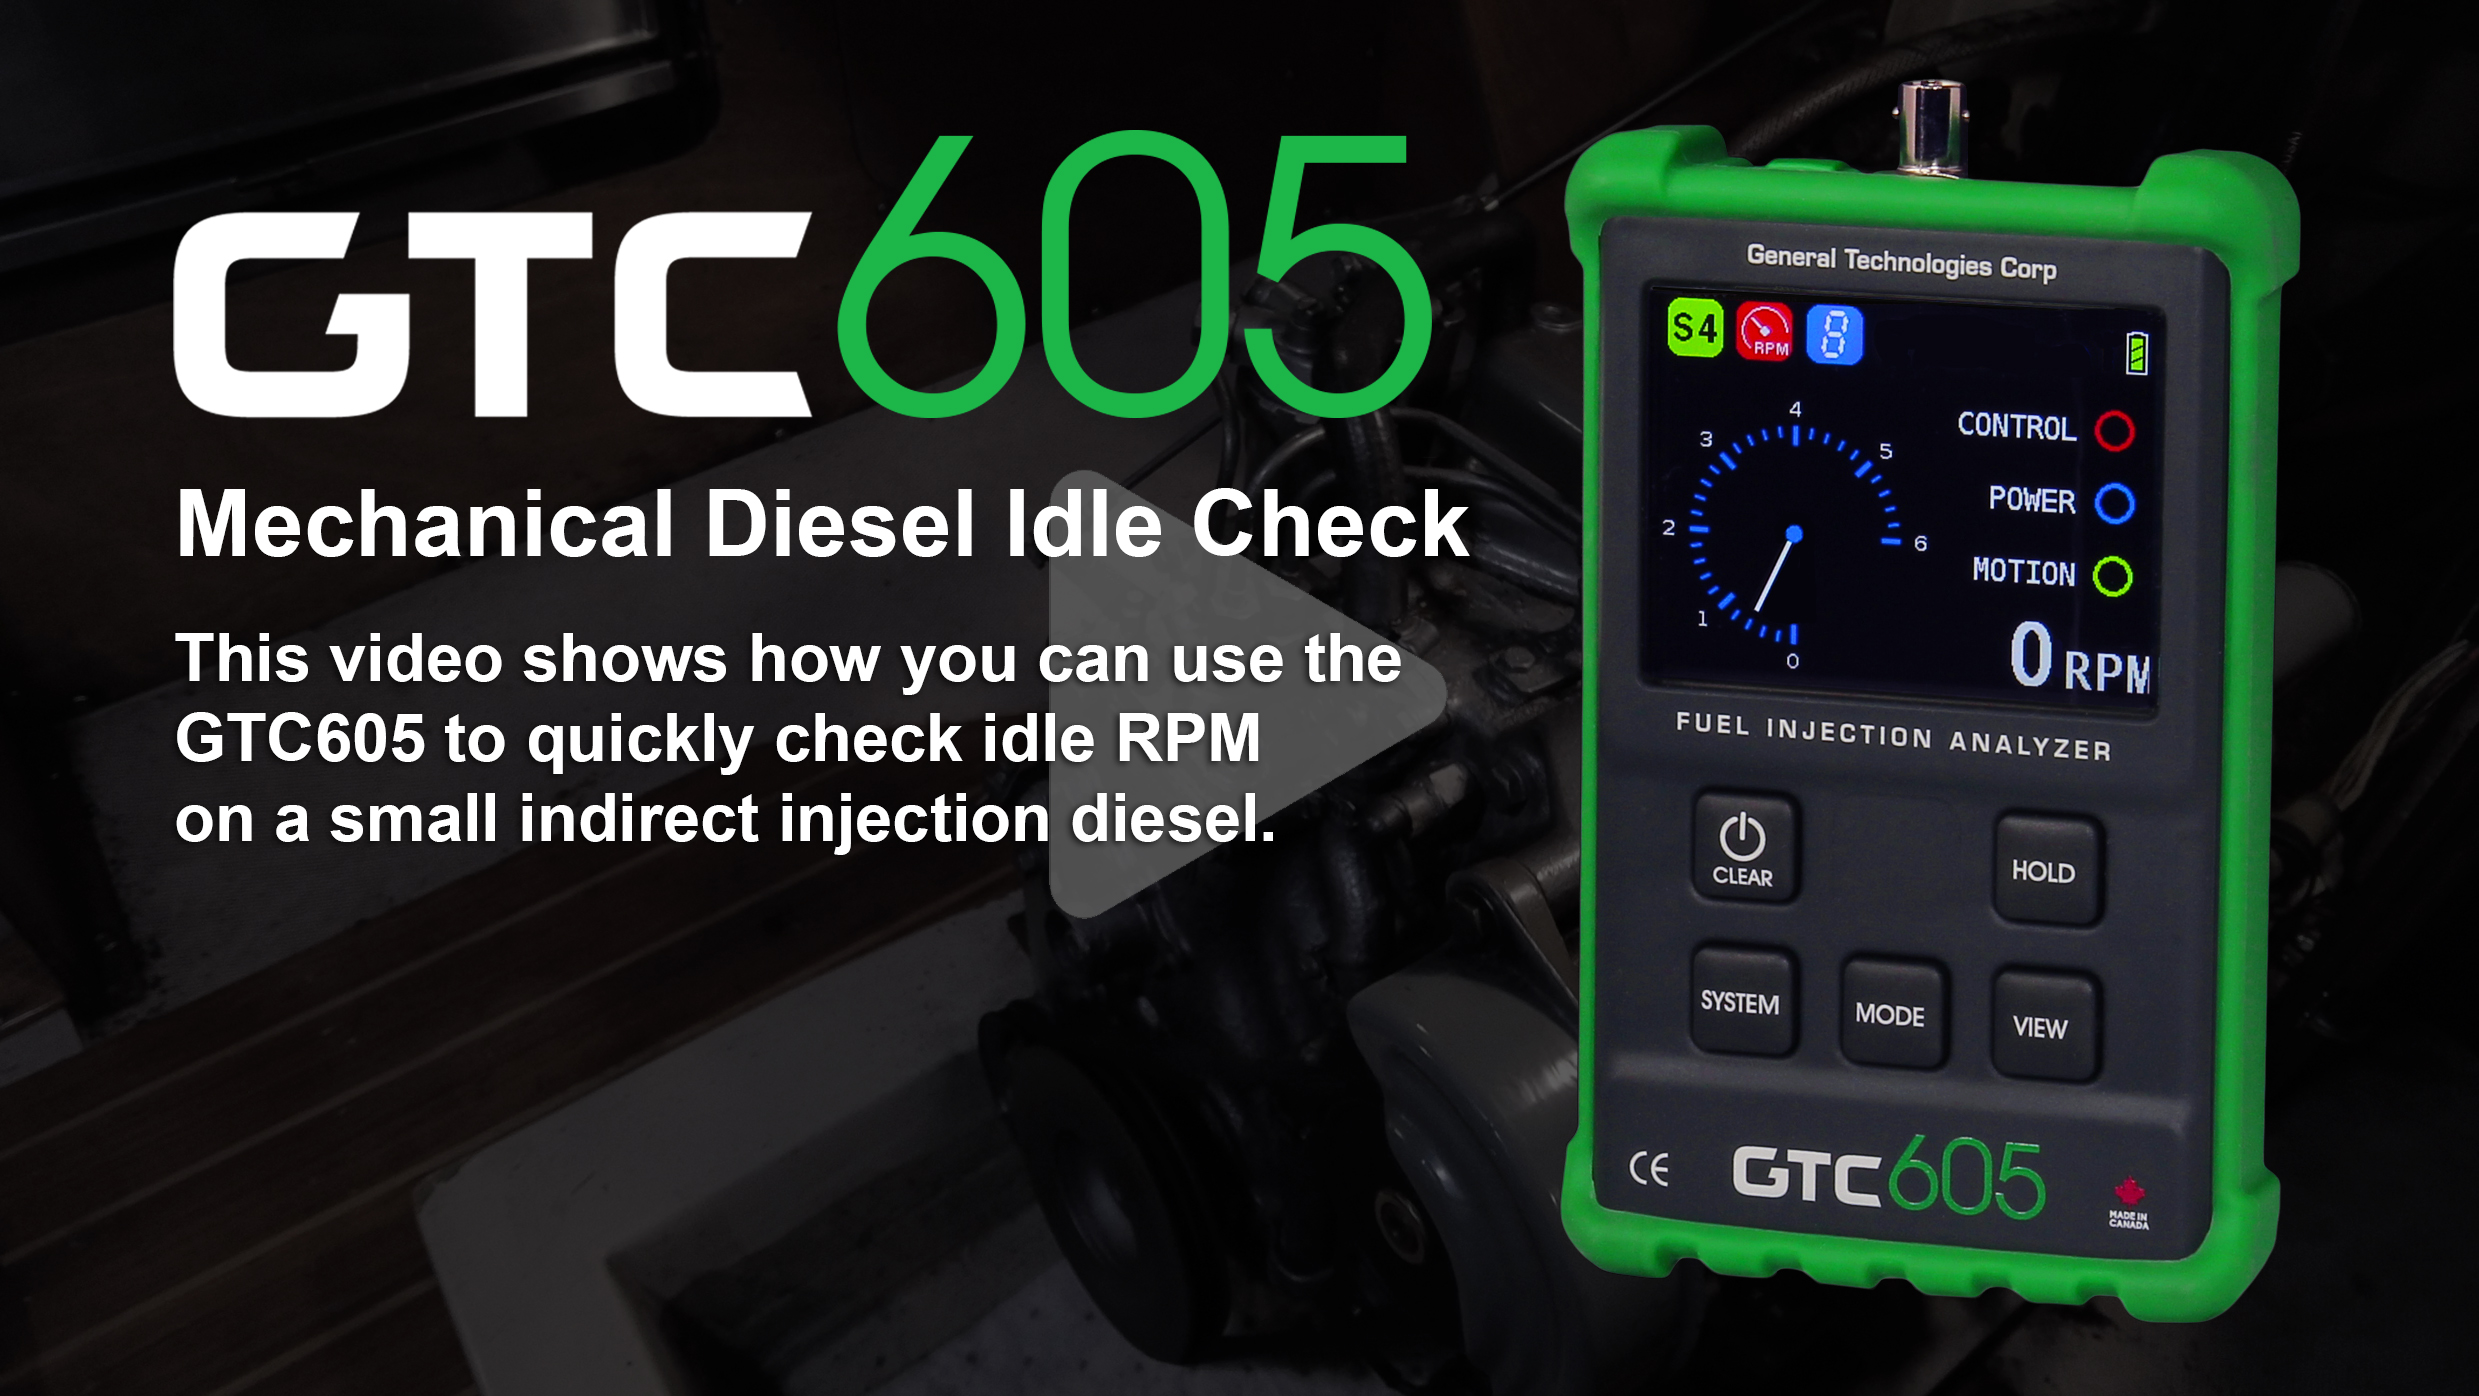 GTC605-Mechanical-Diesel-Idle-Check-Title-Image